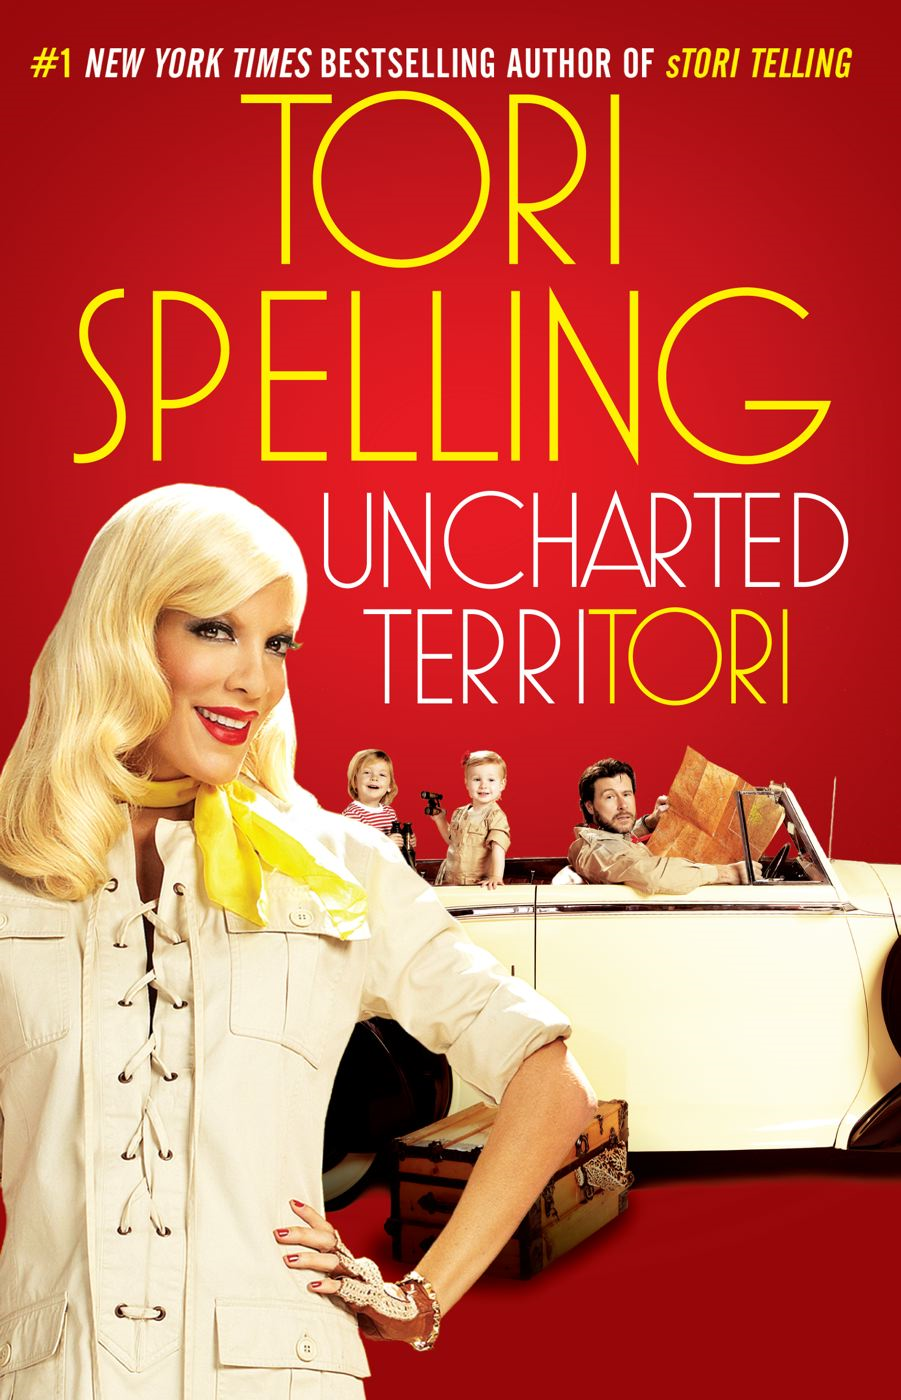 uncharted terriTORI By: Tori Spelling